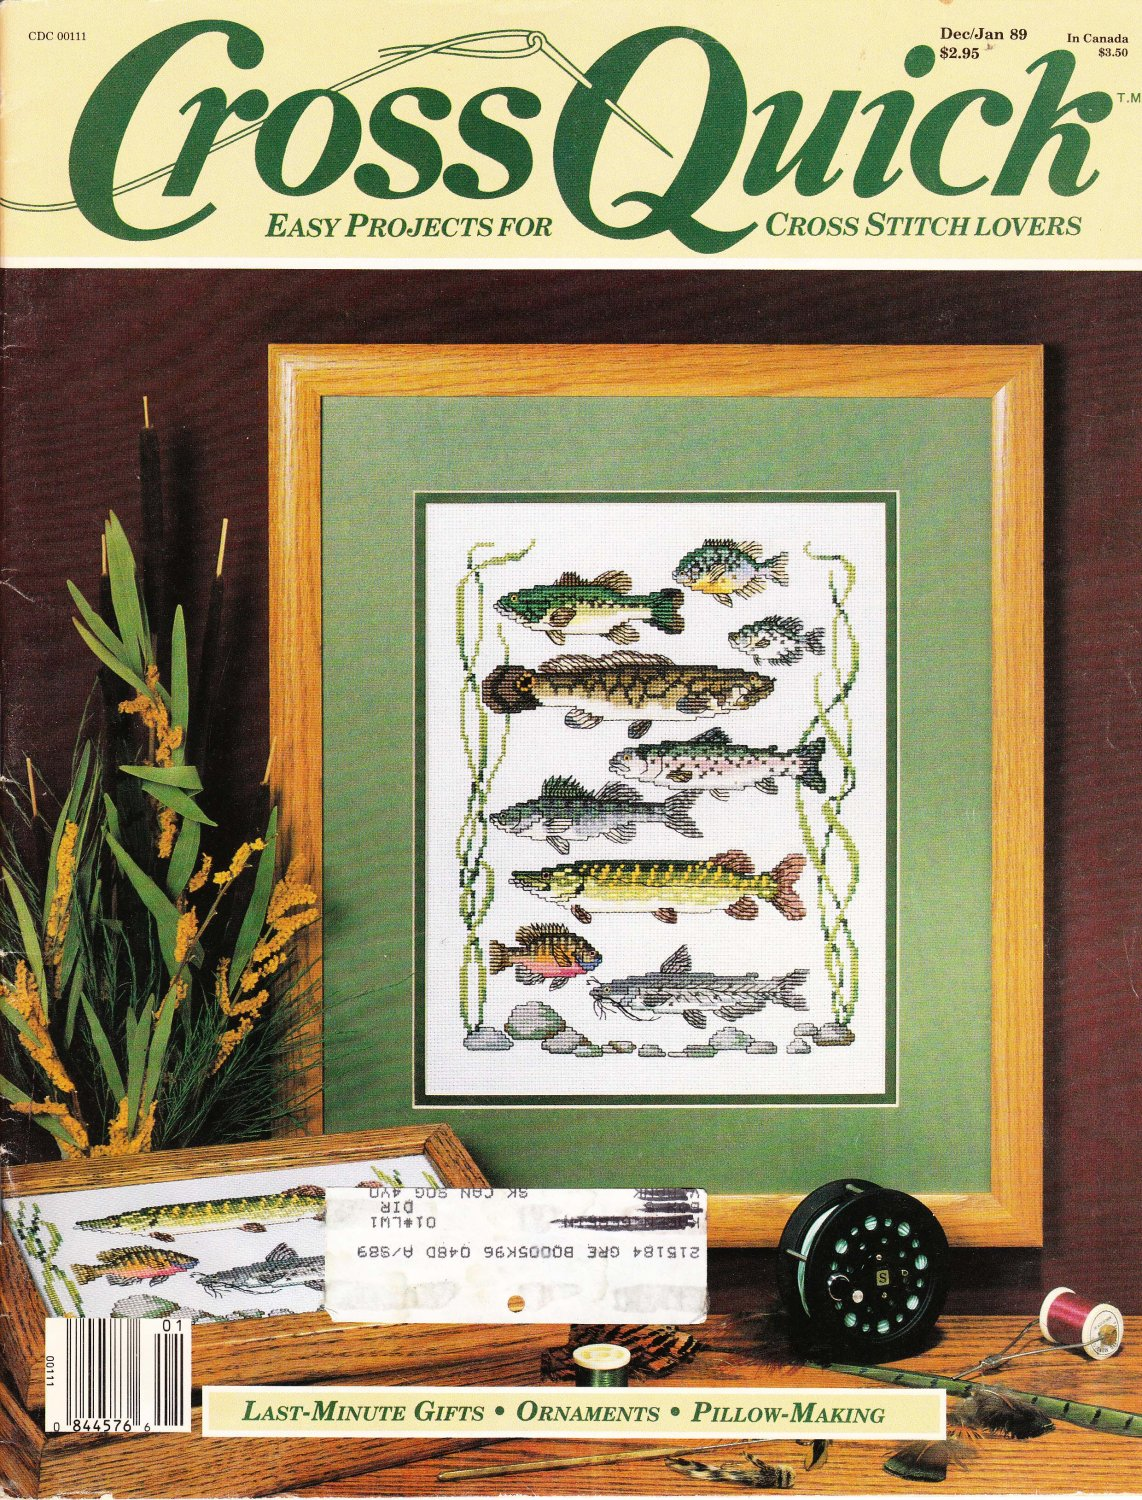 Cross Quick Cross Stitch Magazine Vol. 1 No. 2 Dec/Jan 1989